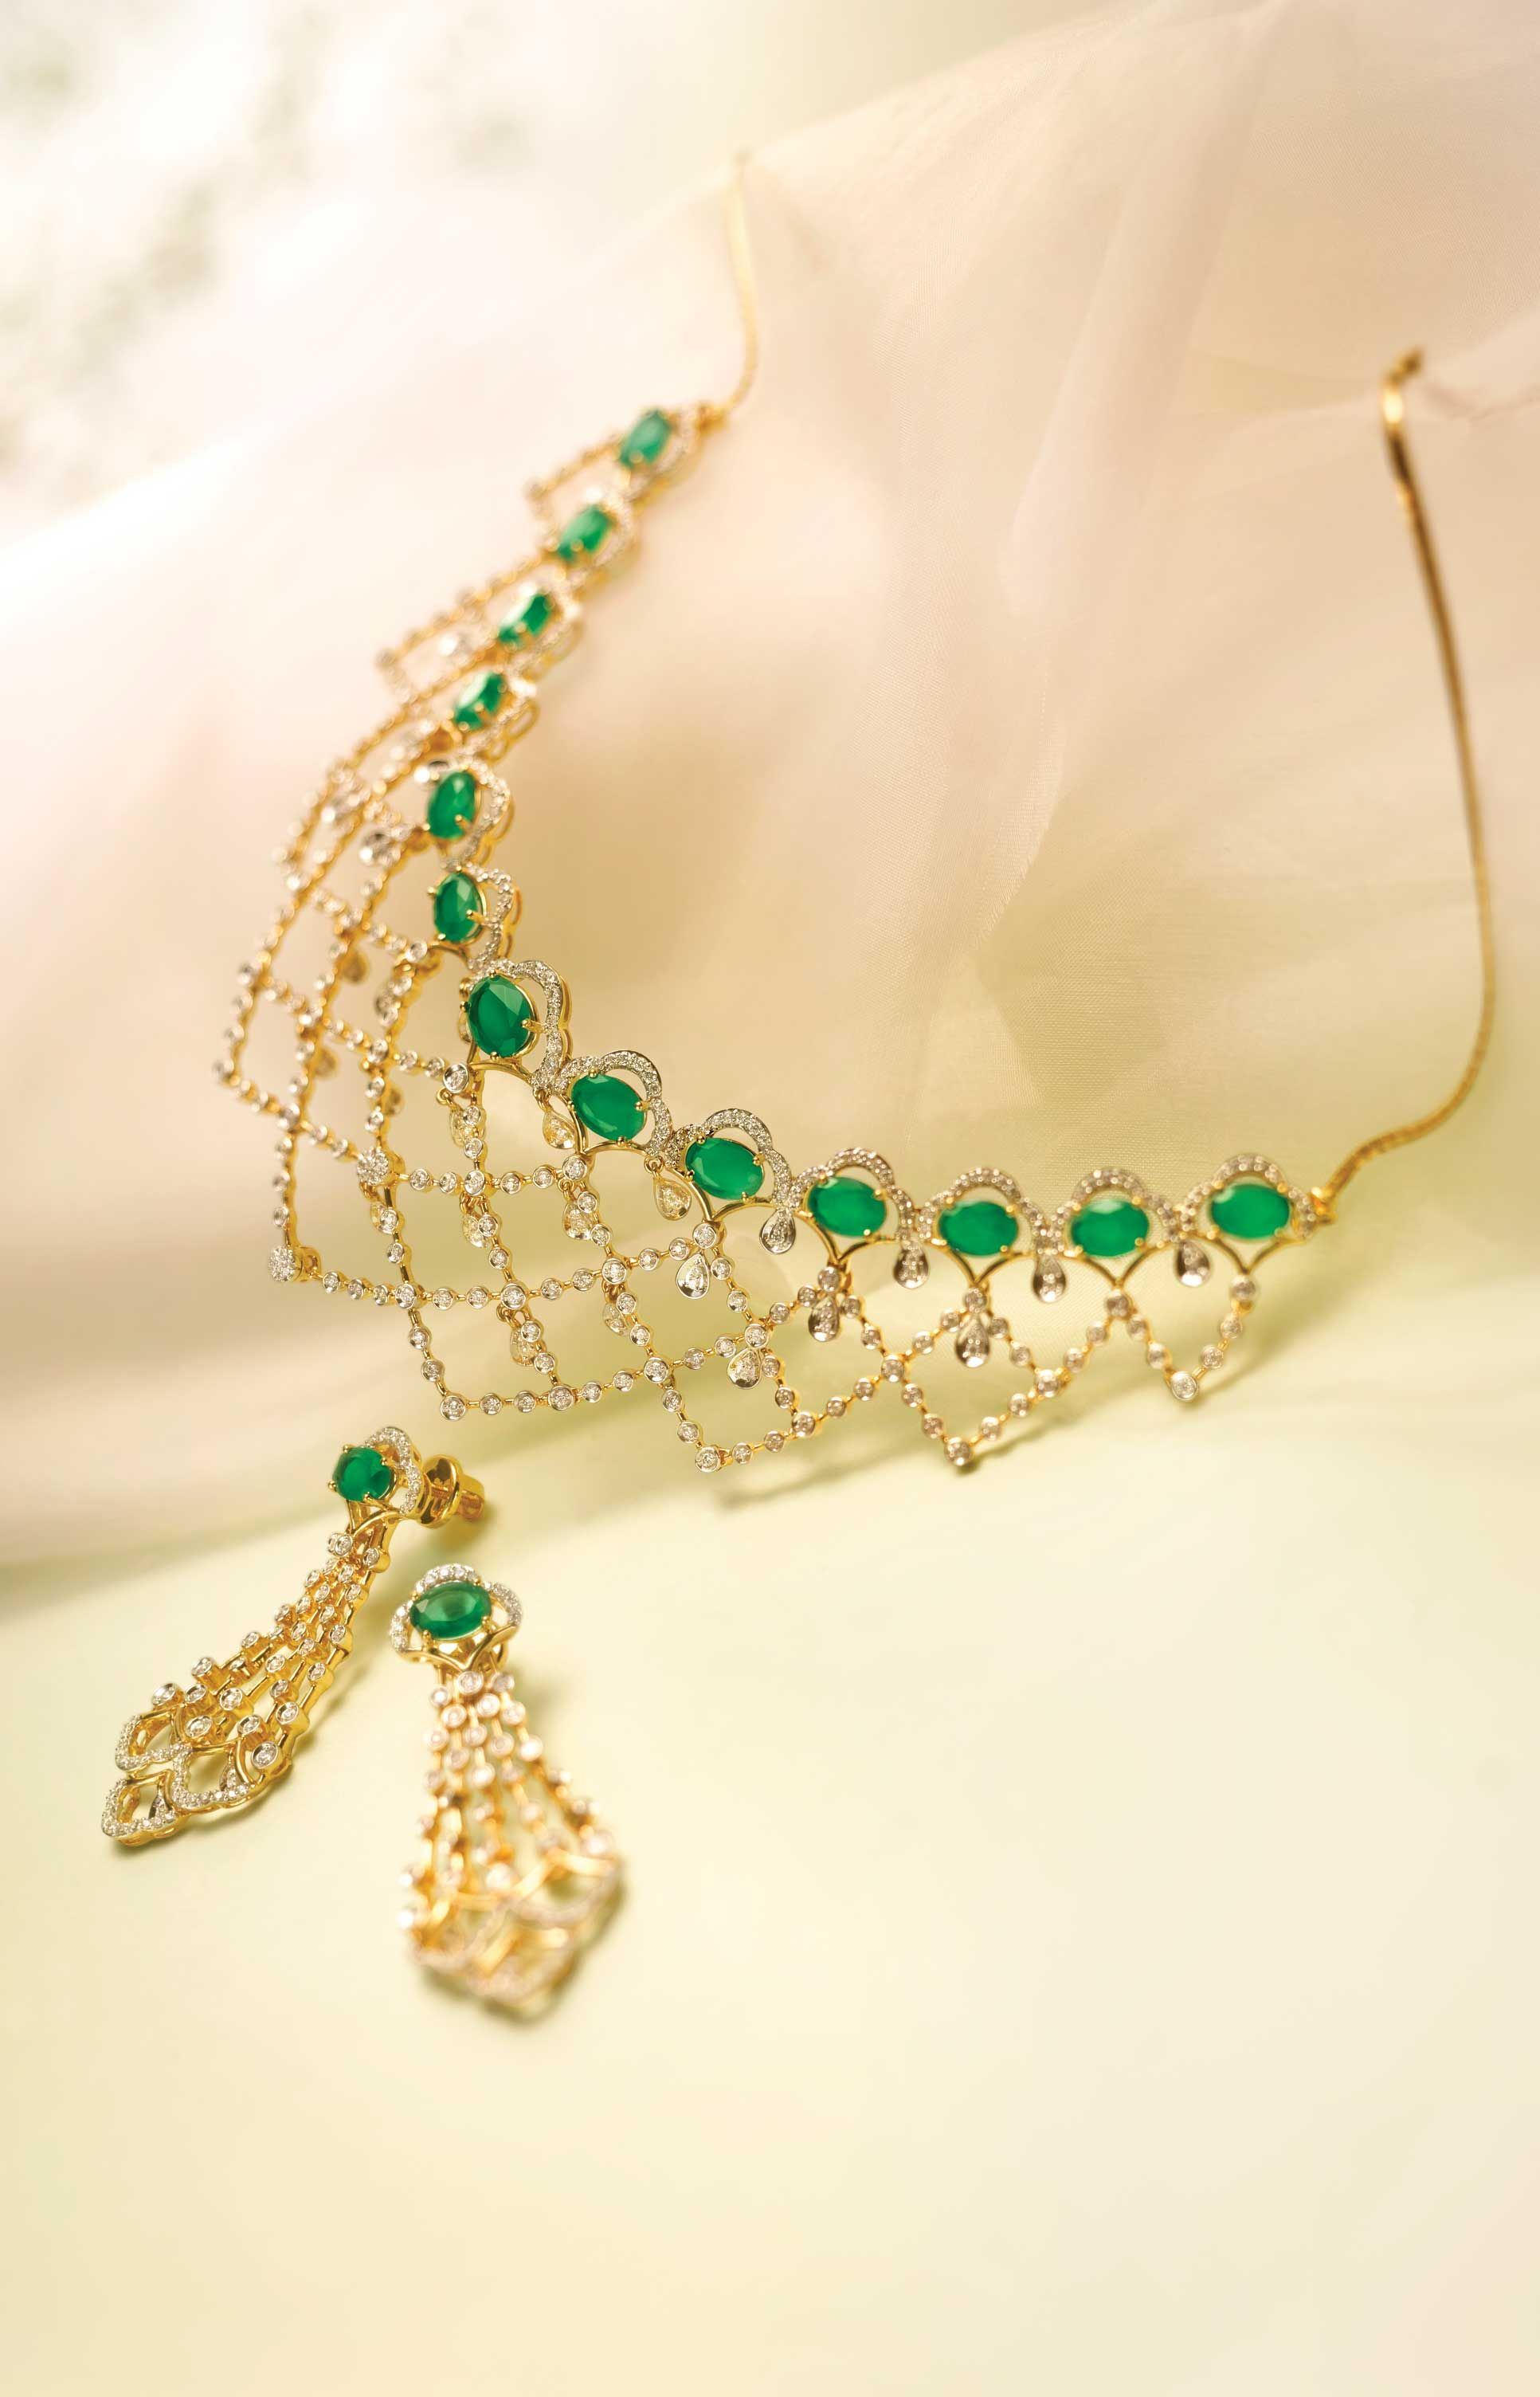 Pin by Tanishq Jewellery on Queen of Hearts Pinterest